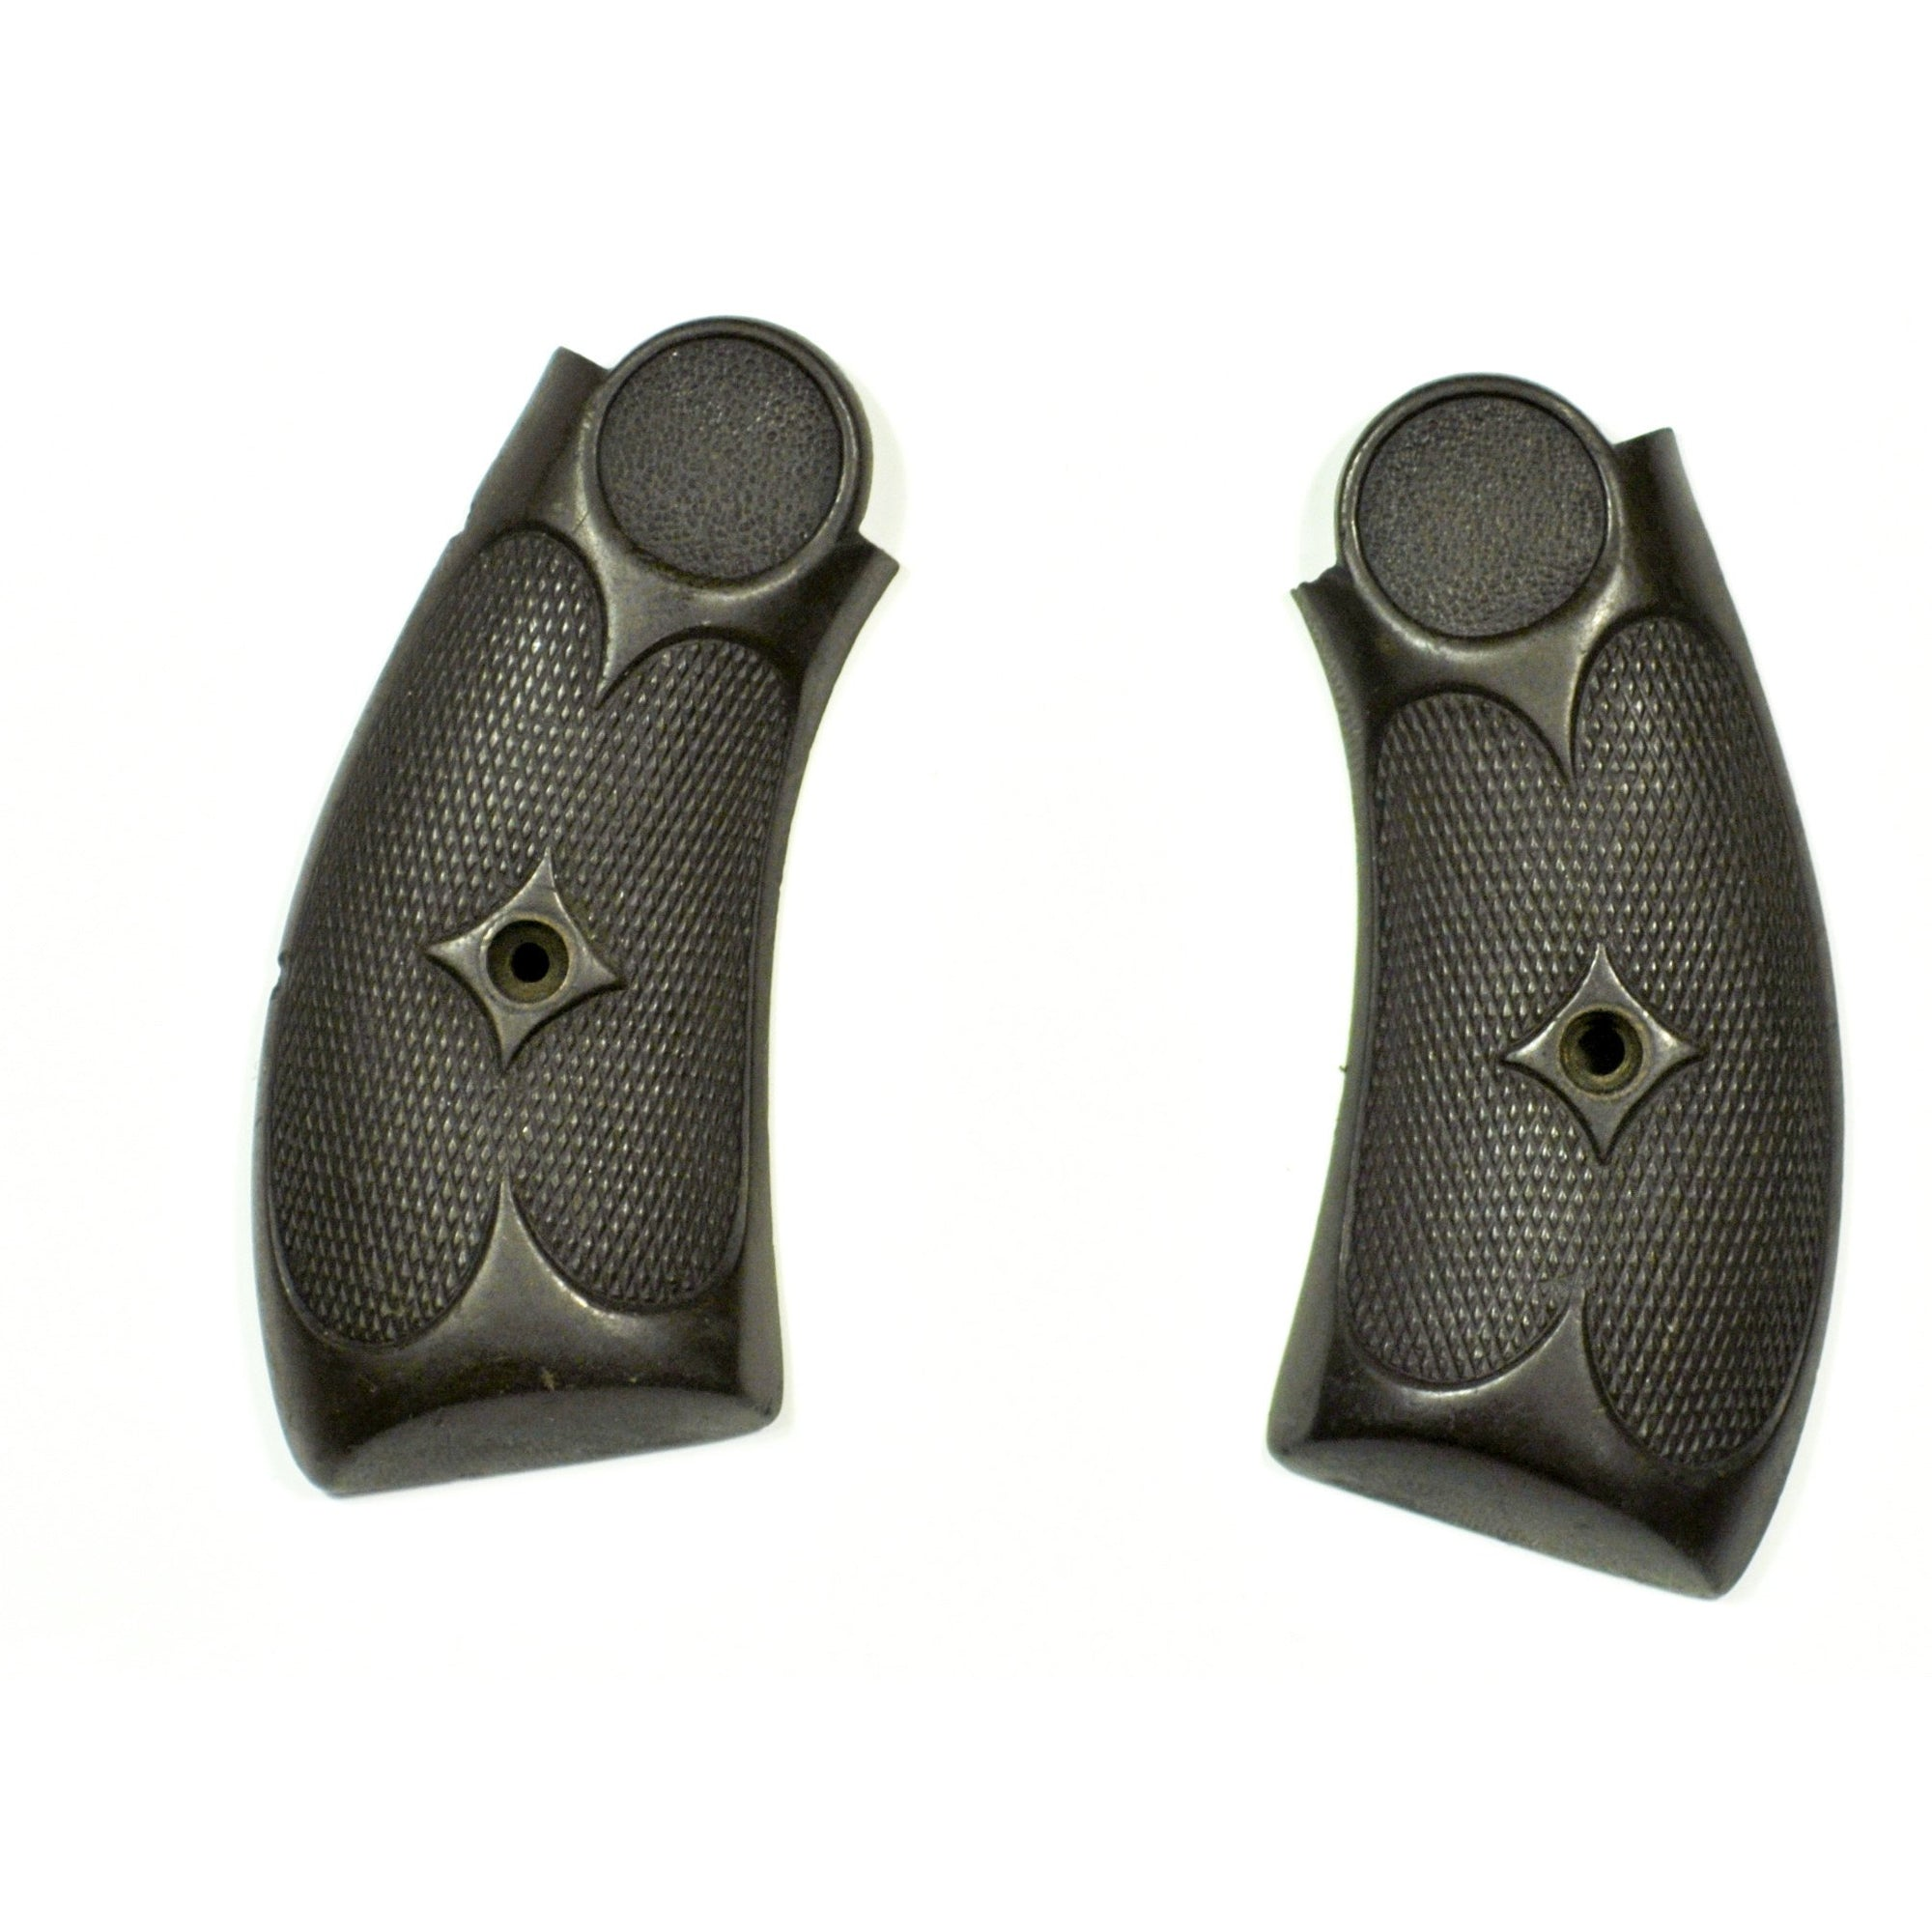 Hopkins & Allen XL Bulldog Revolver Black Hard Rubber Grips - Pair,Gunsmith's Parts- Canada Brass